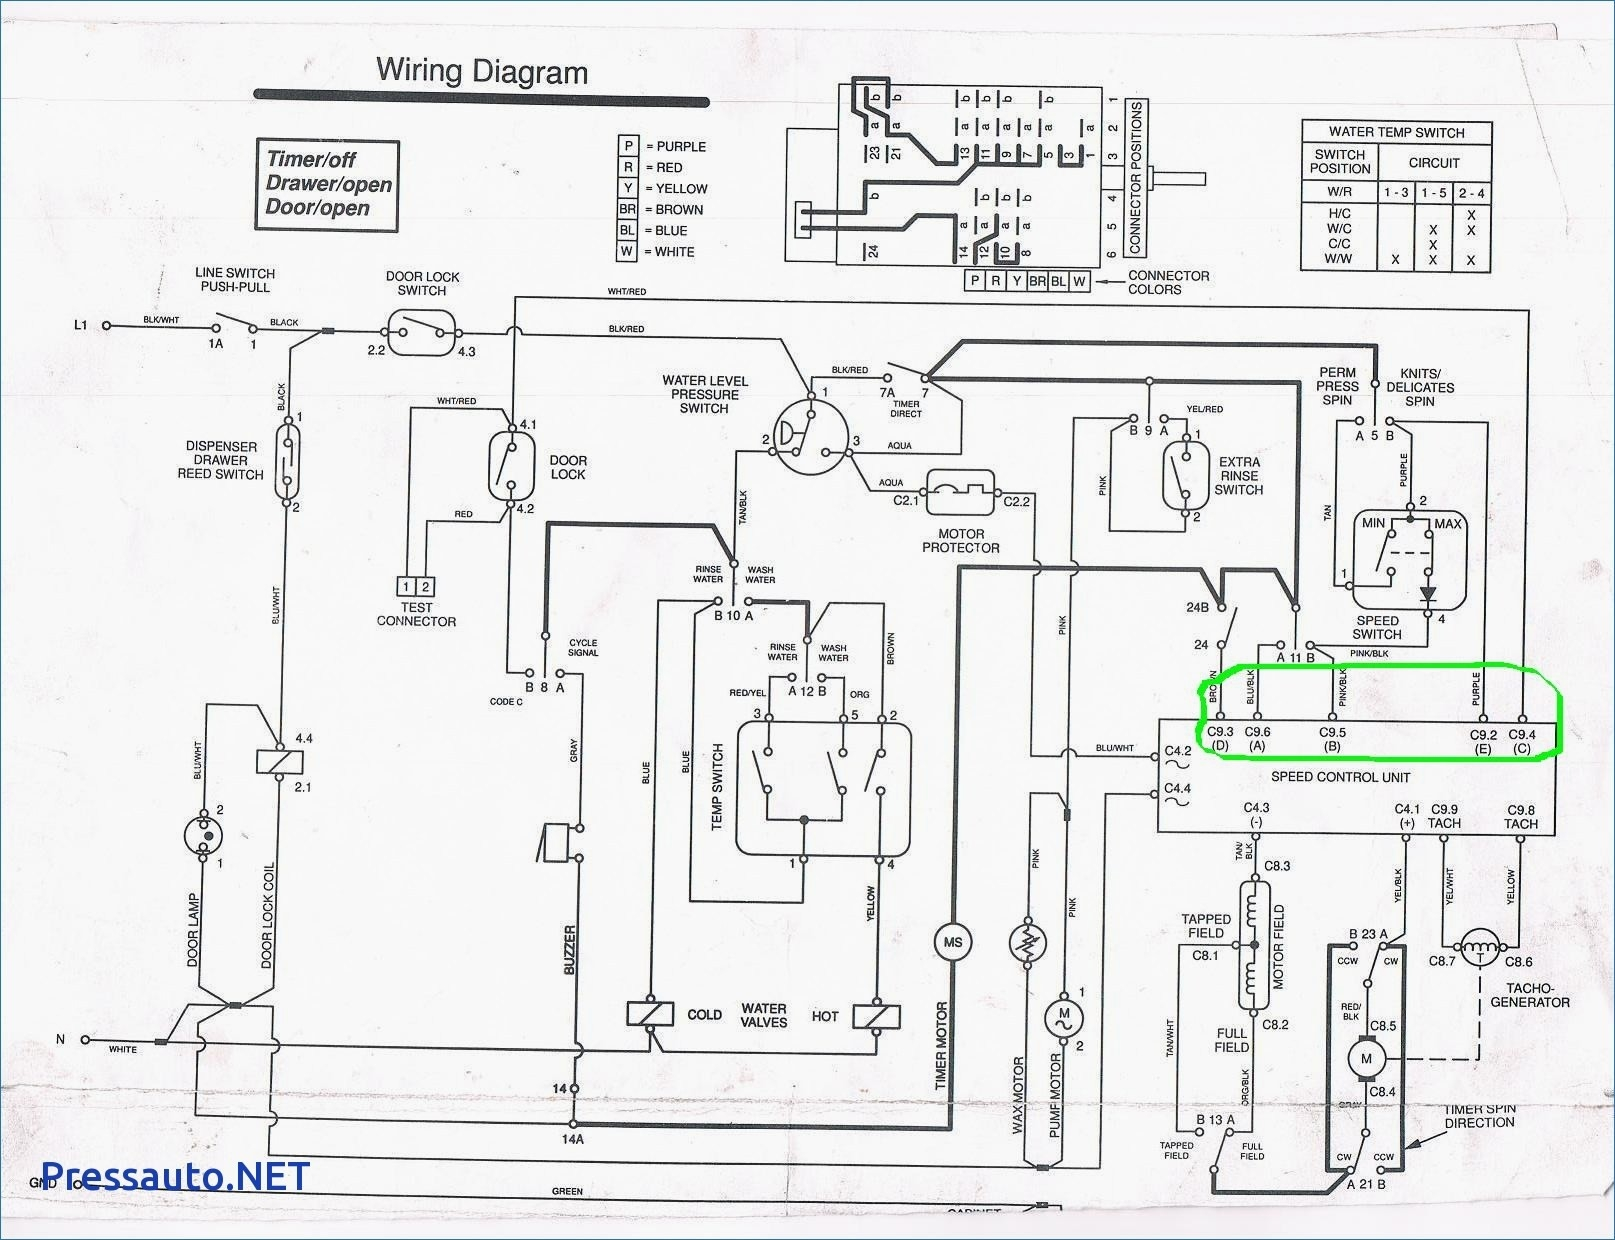 Wiring Diagram For A Whirlpool Dryer